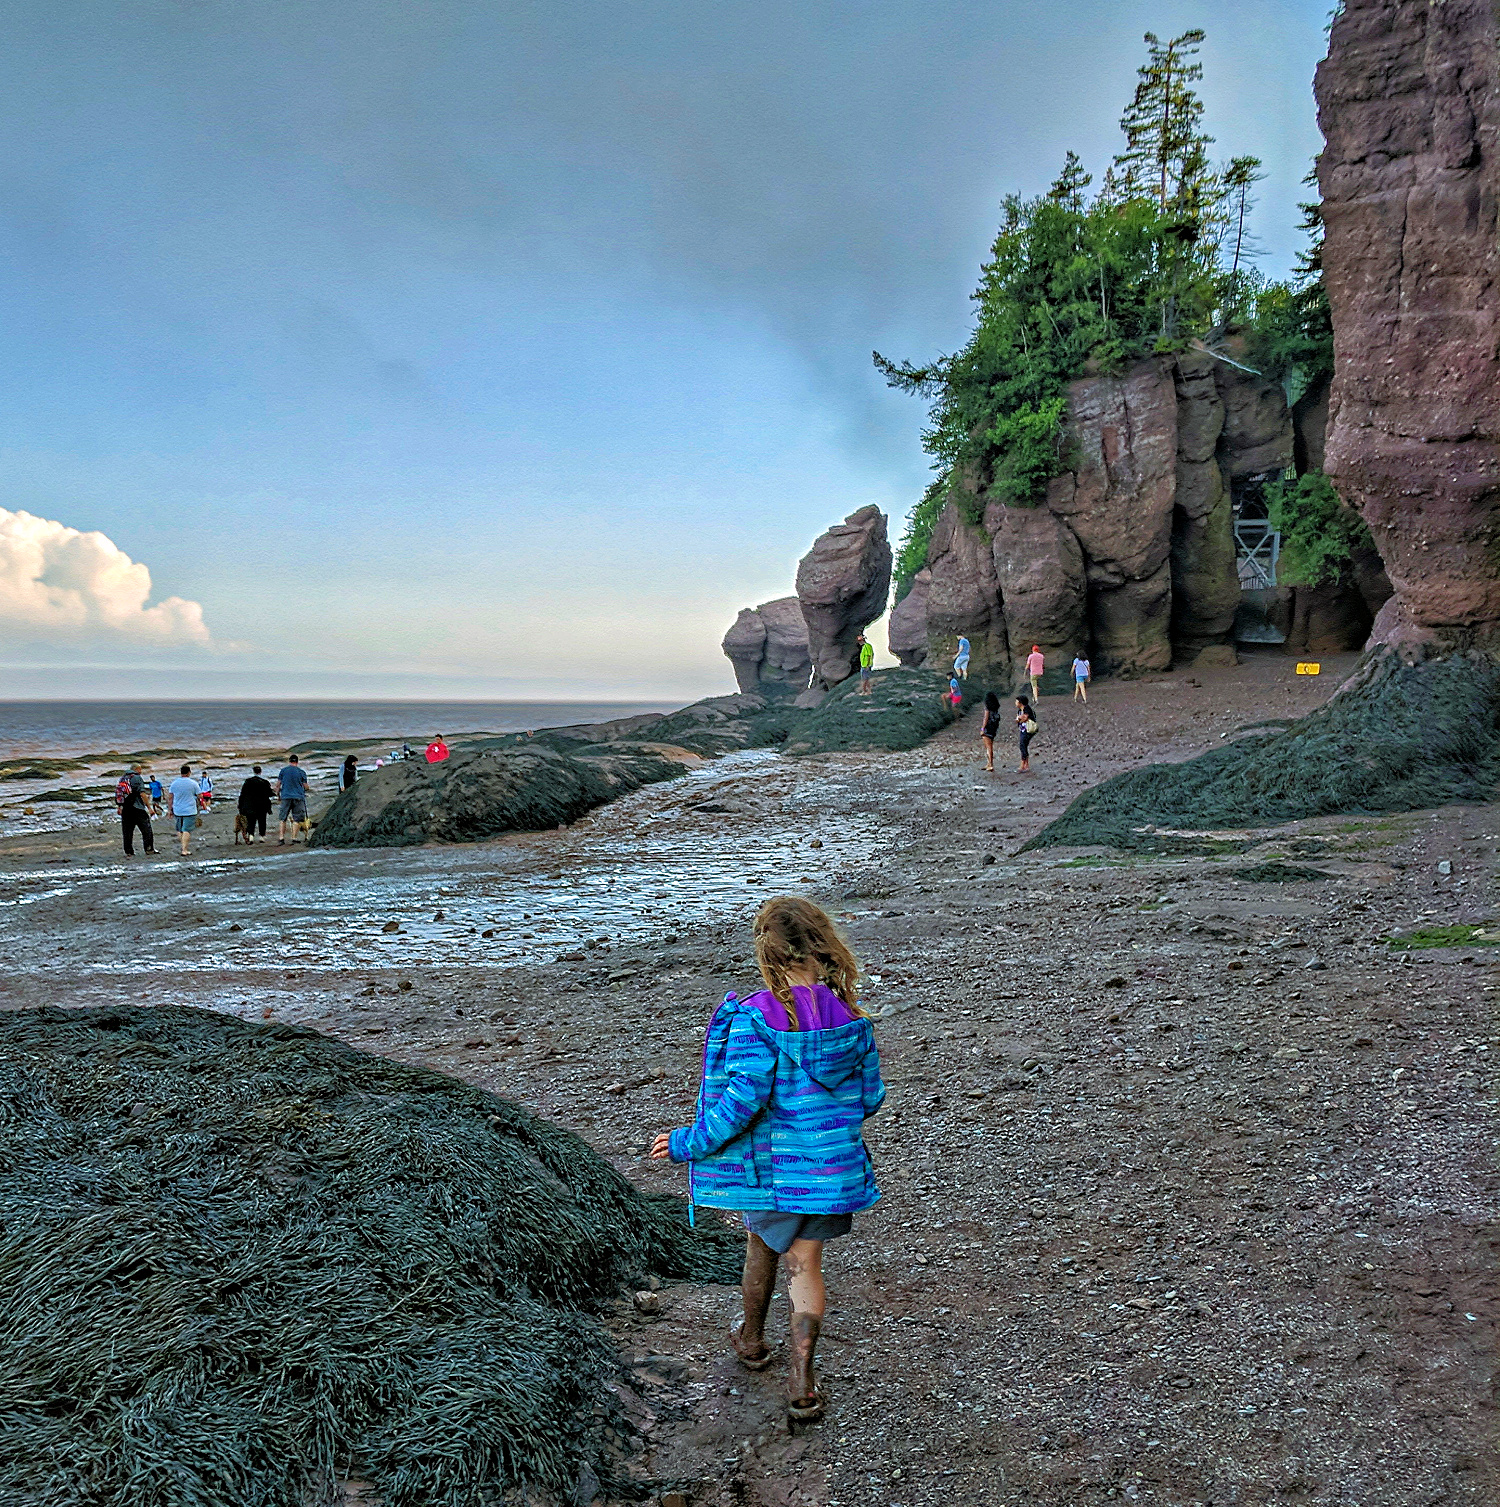 Maritime Canada. Hopewell Rocks Park in the Bay of Fund. Little girl walking on the ocean floor.